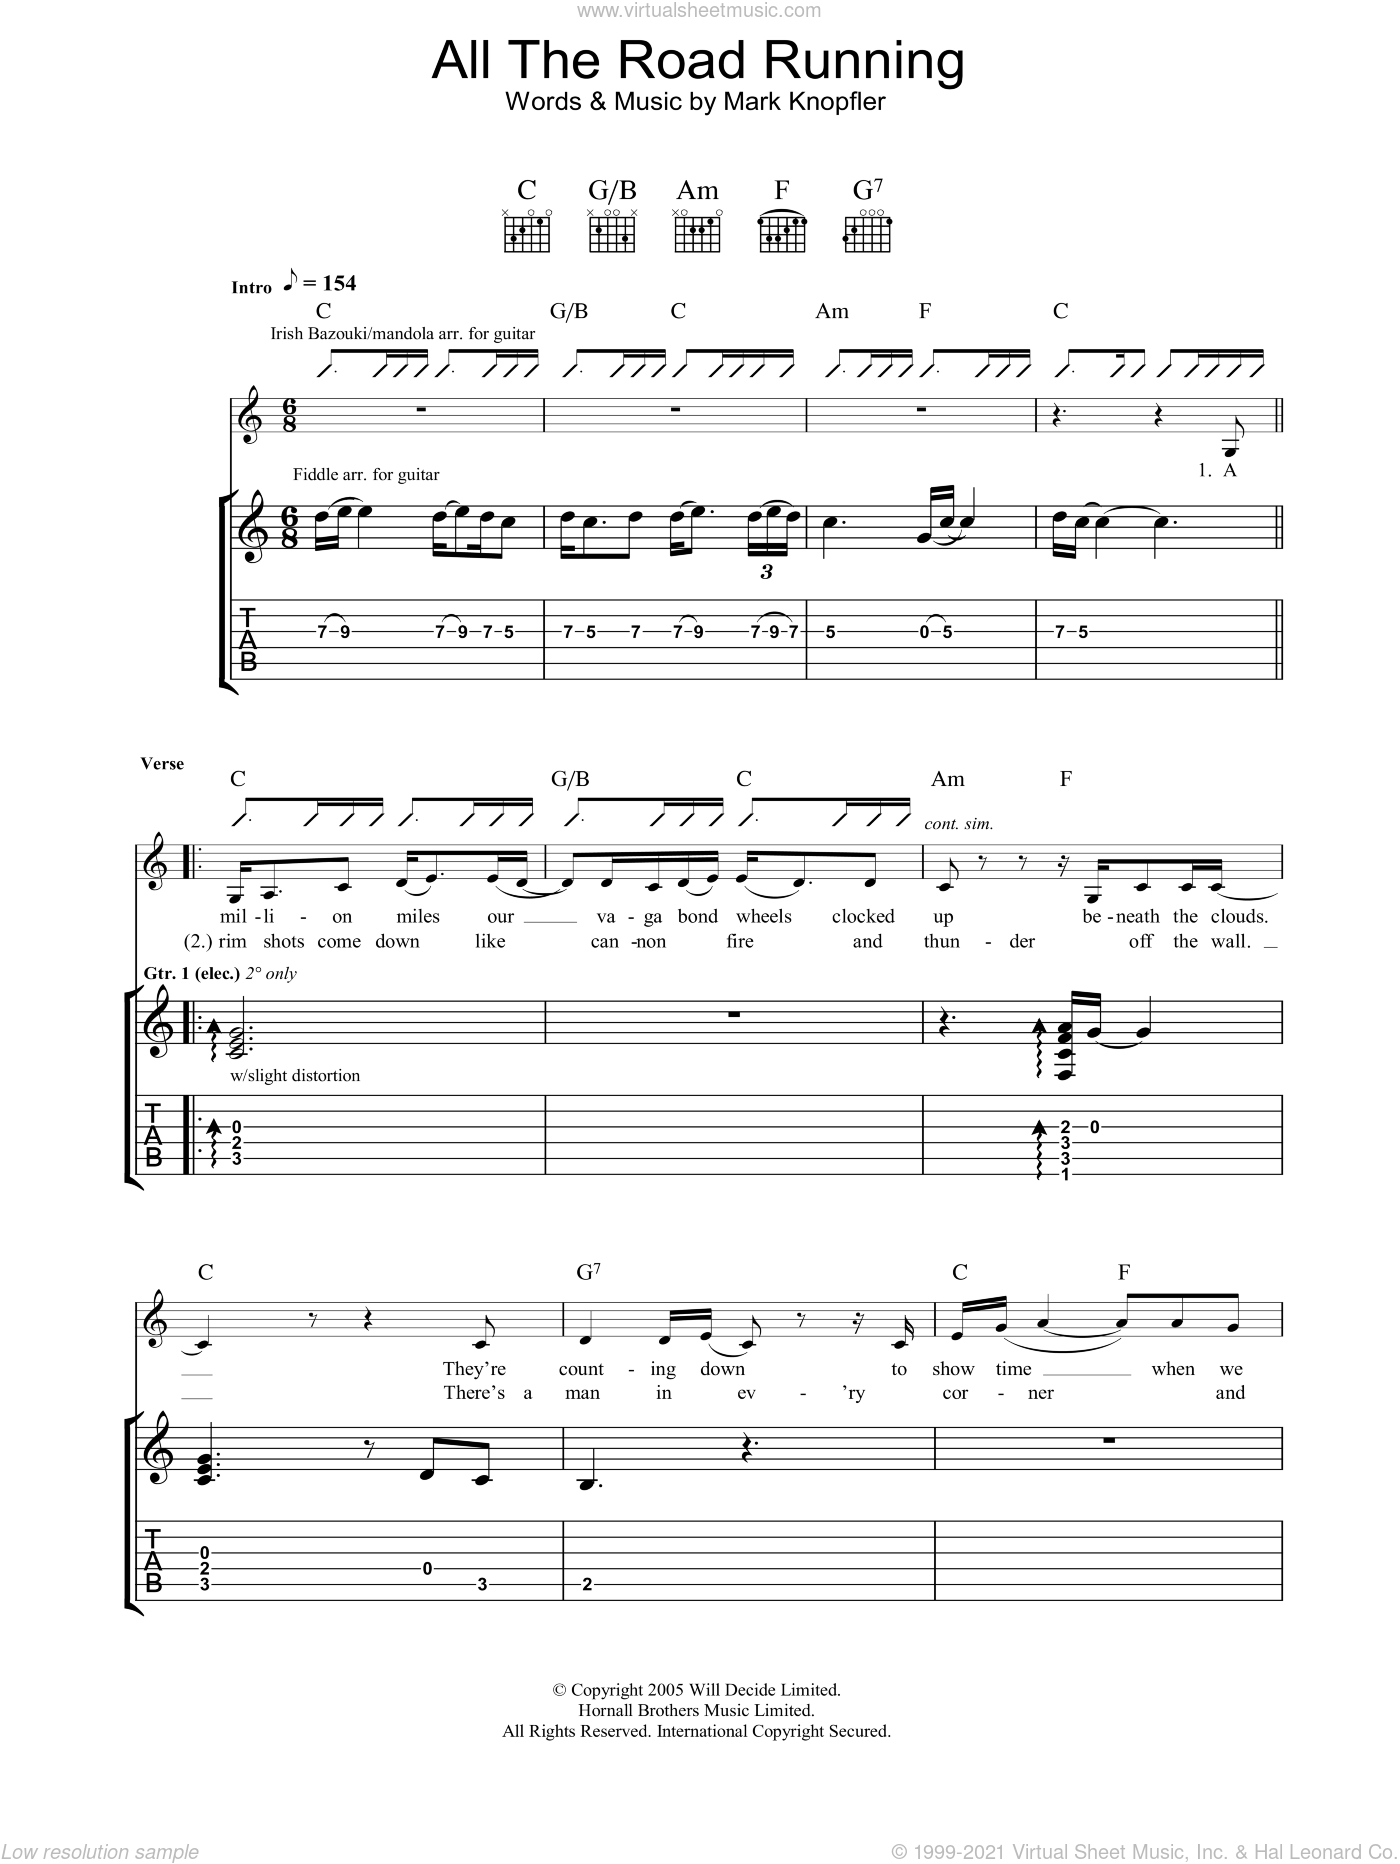 All The Road Running sheet music for guitar (tablature) by Mark Knopfler